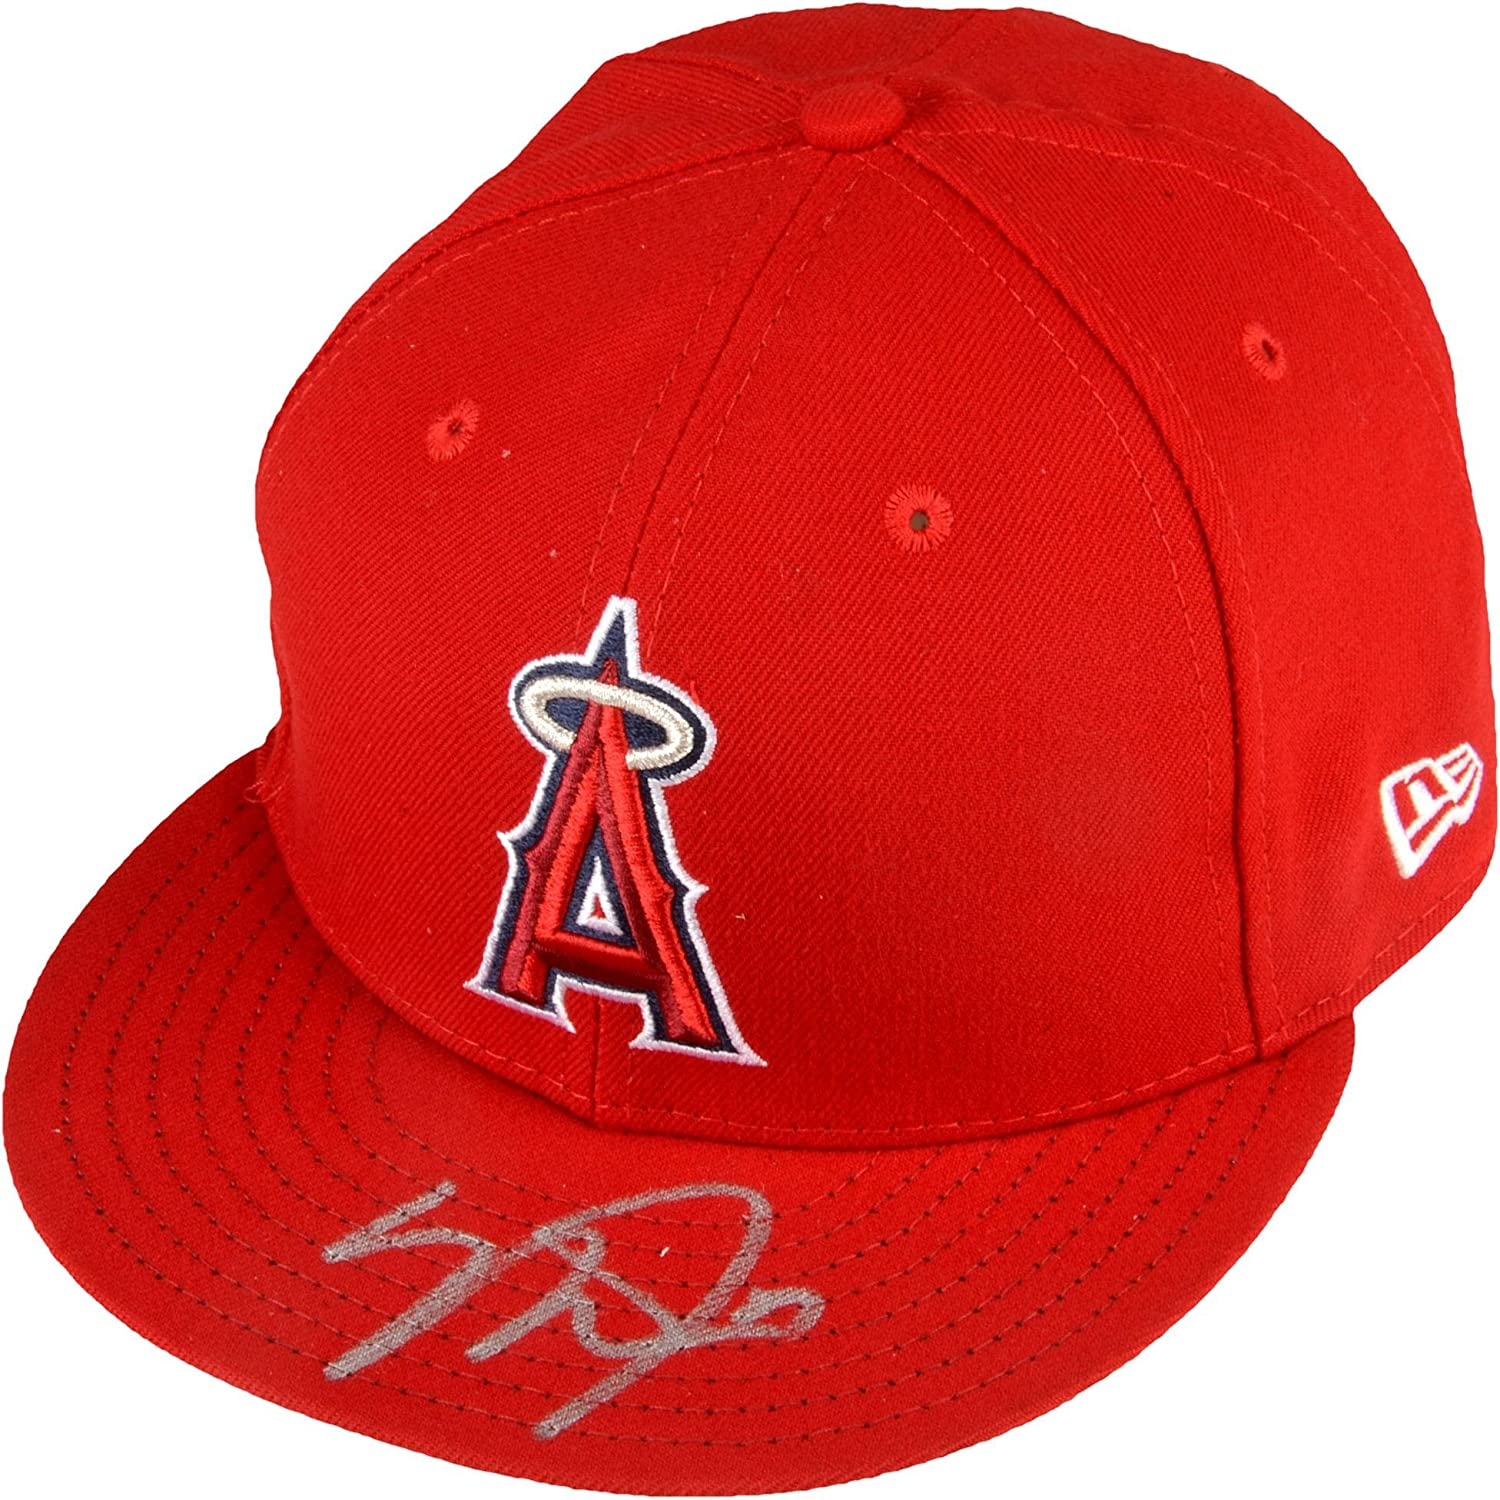 86bf1dc161d Mike Trout Los Angeles Angels Autographed New Era Cap - Fanatics Authentic  Certified - Autographed Hats at Amazon s Sports Collectibles Store